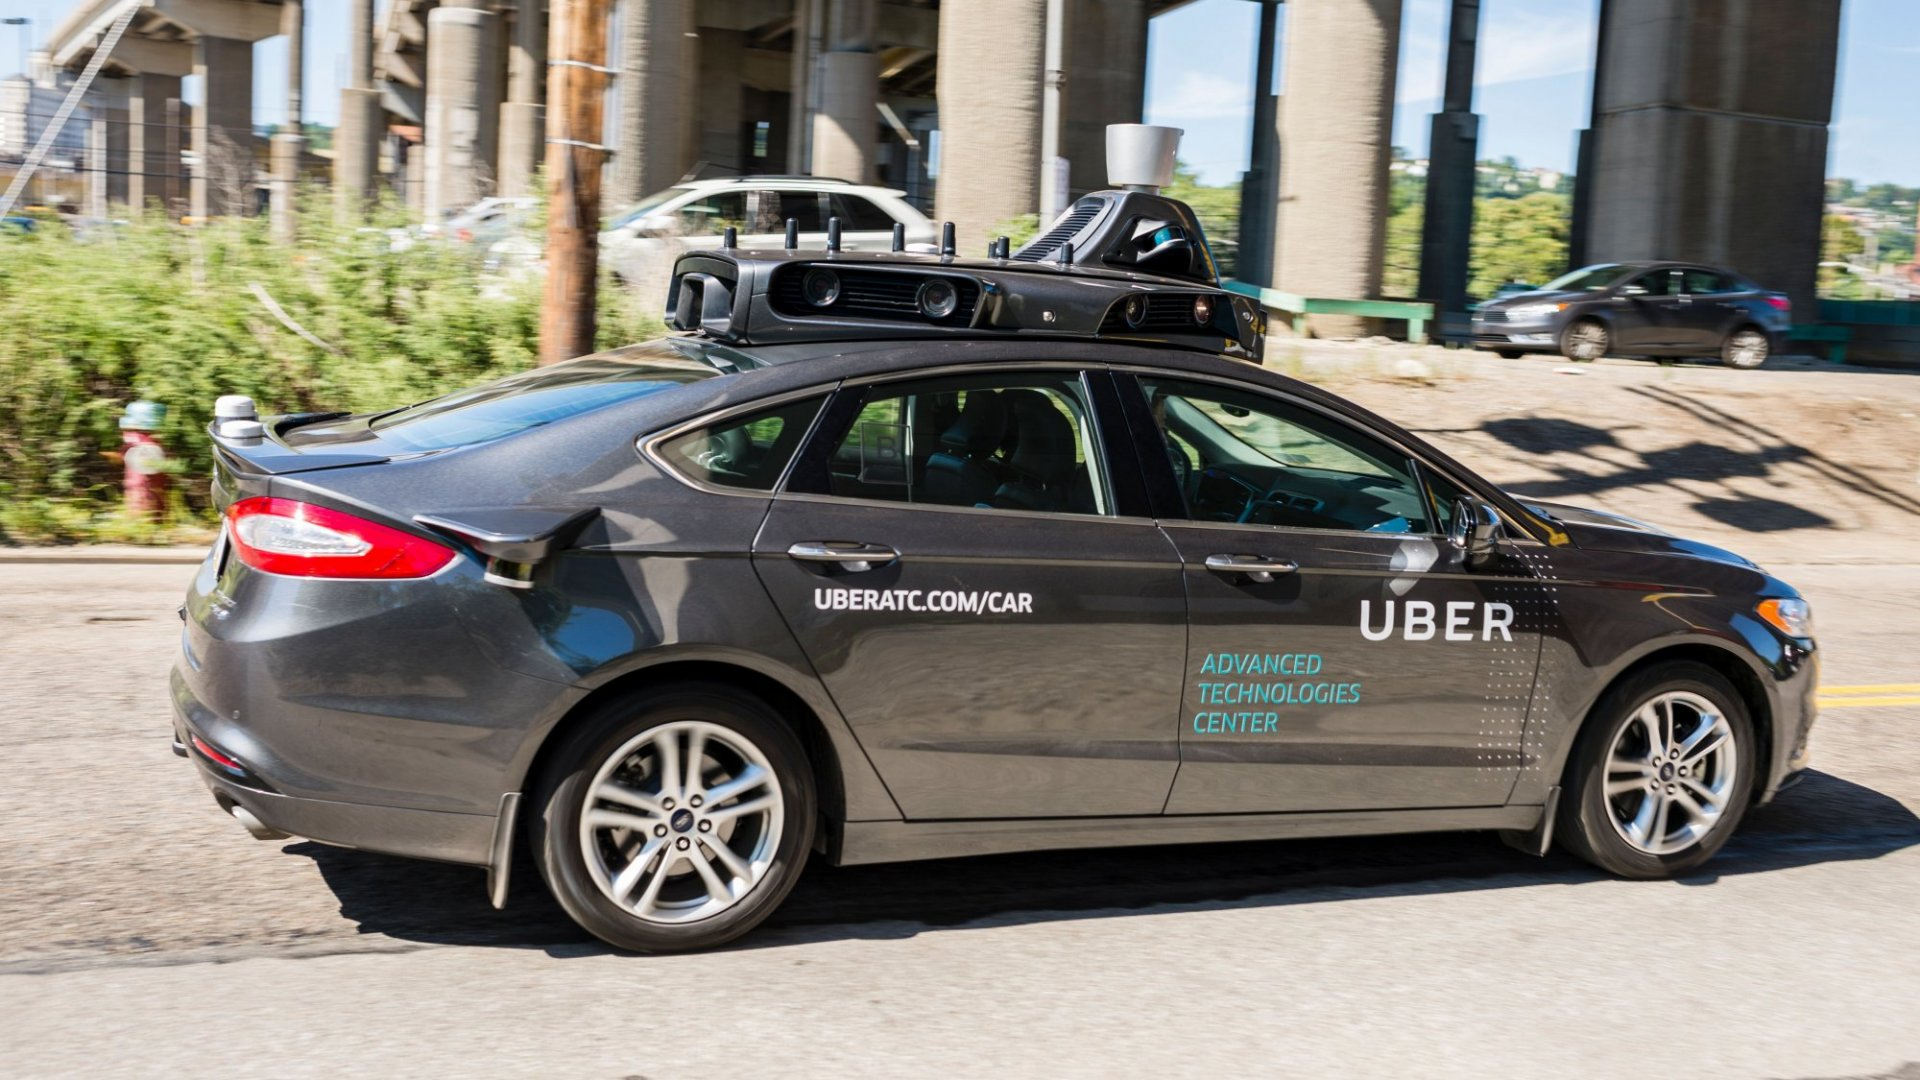 Uber Wants to Bring Flying Cars to Cities in 10 Years